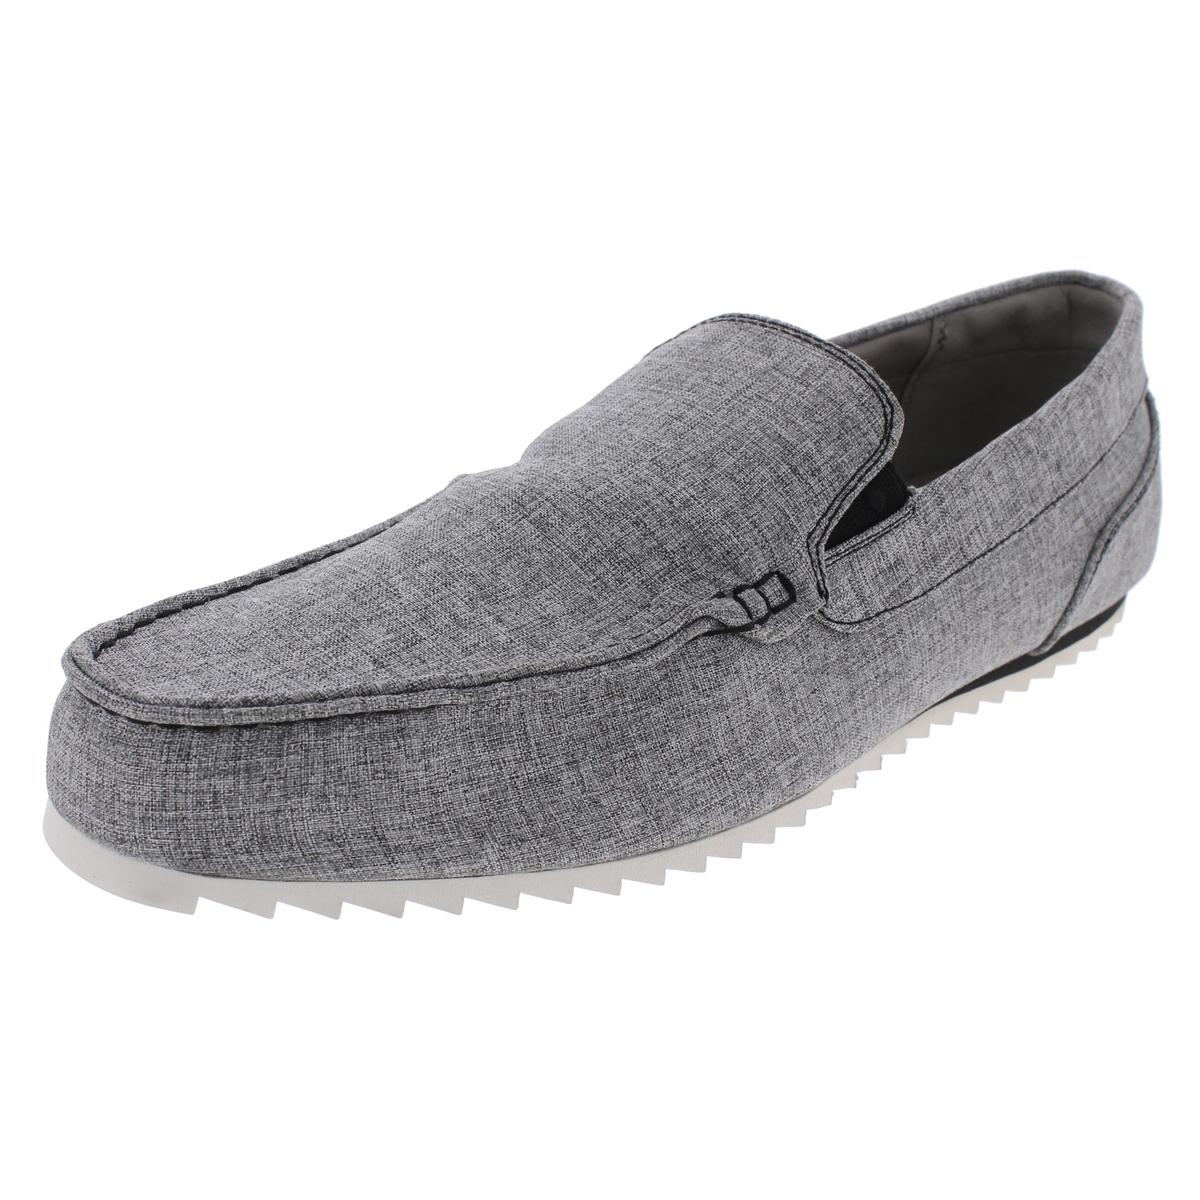 GBX Mens #Shark Low Top Lightweight Loafers by GBX